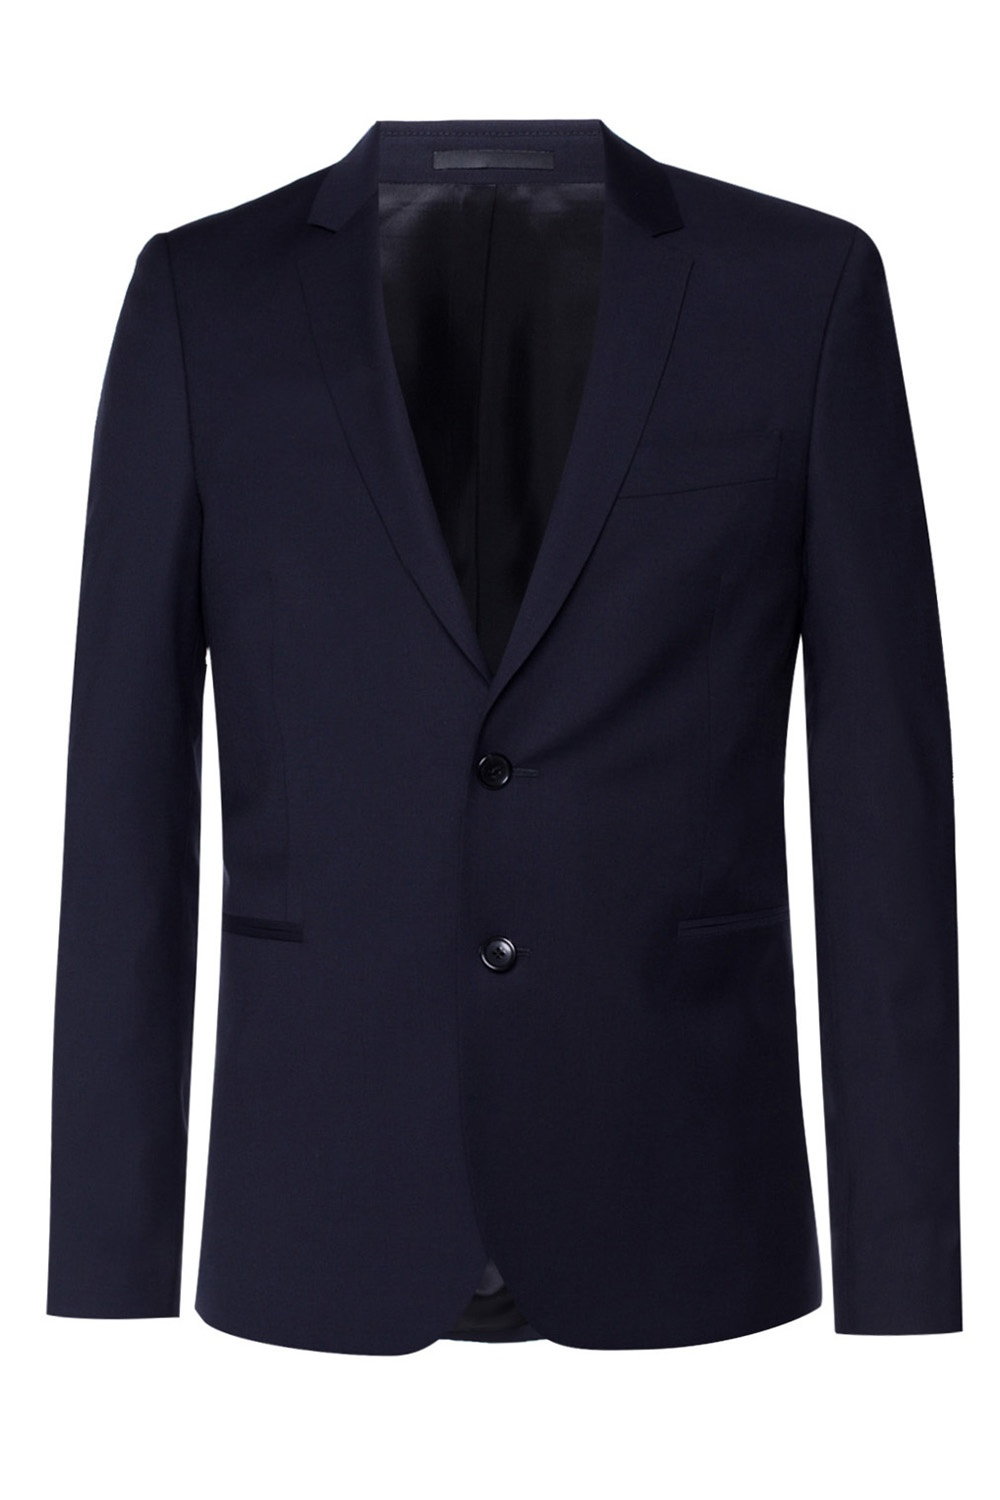 PS Paul Smith Wool suit